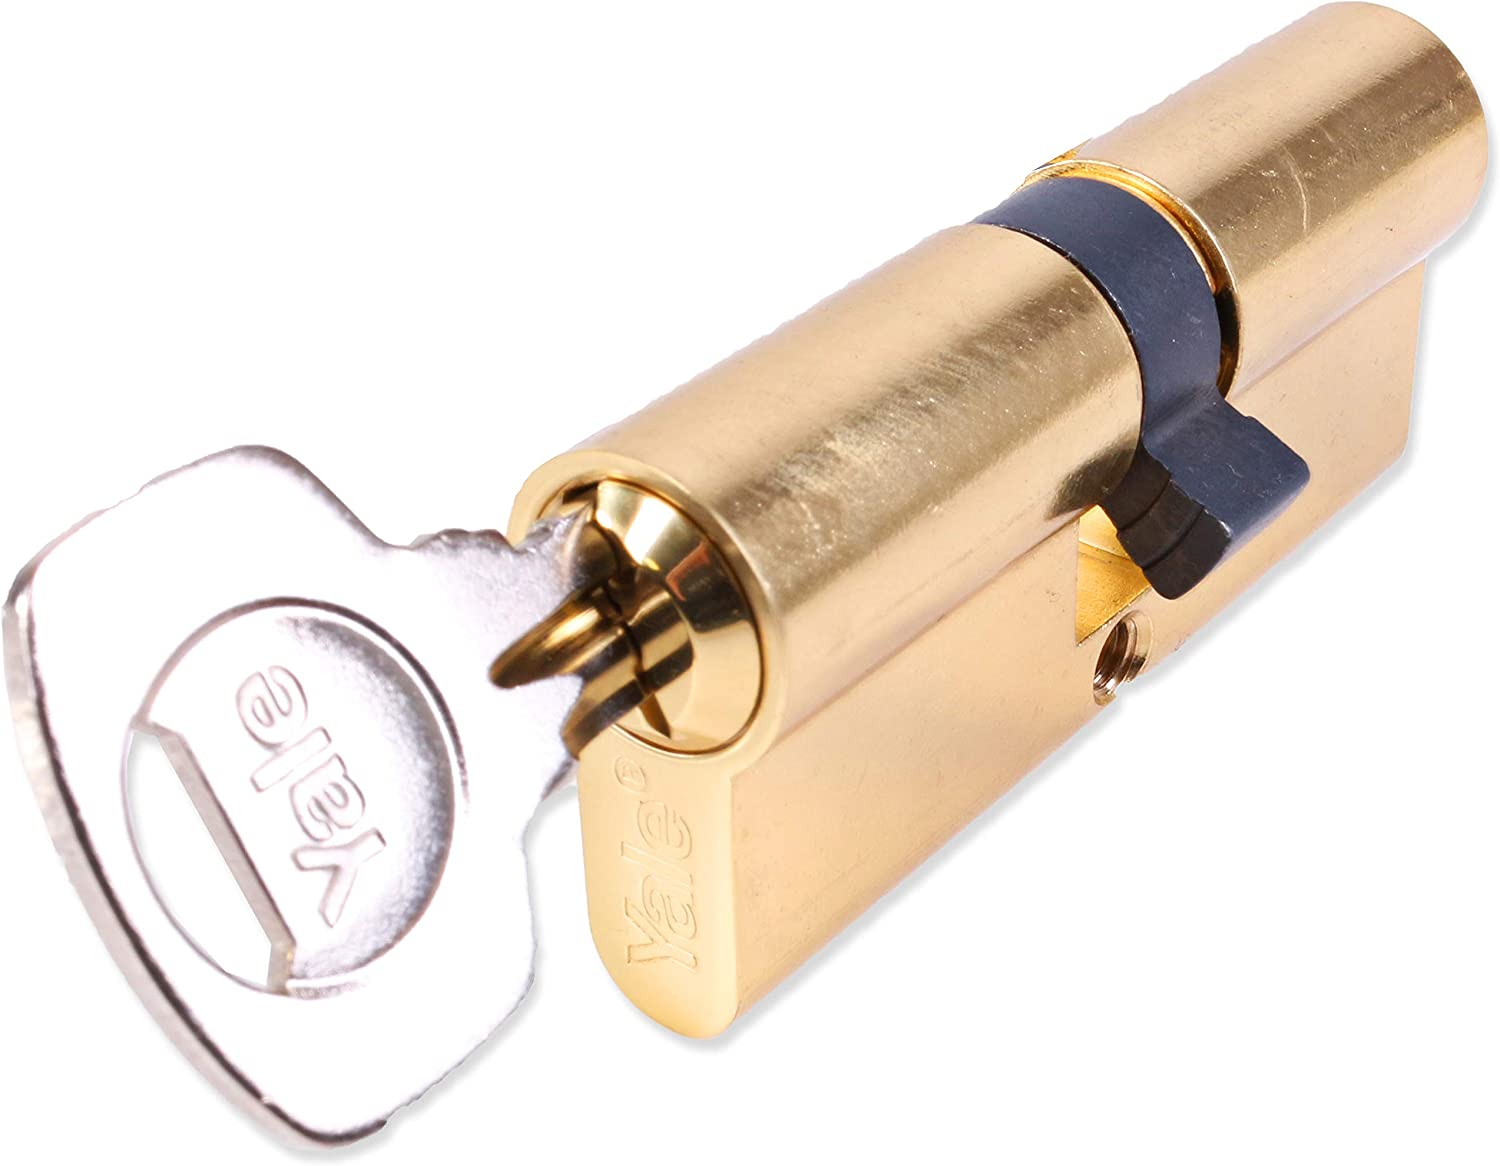 30:10:30, Brass Yale 6 Pin Euro Double Profile Cylinder